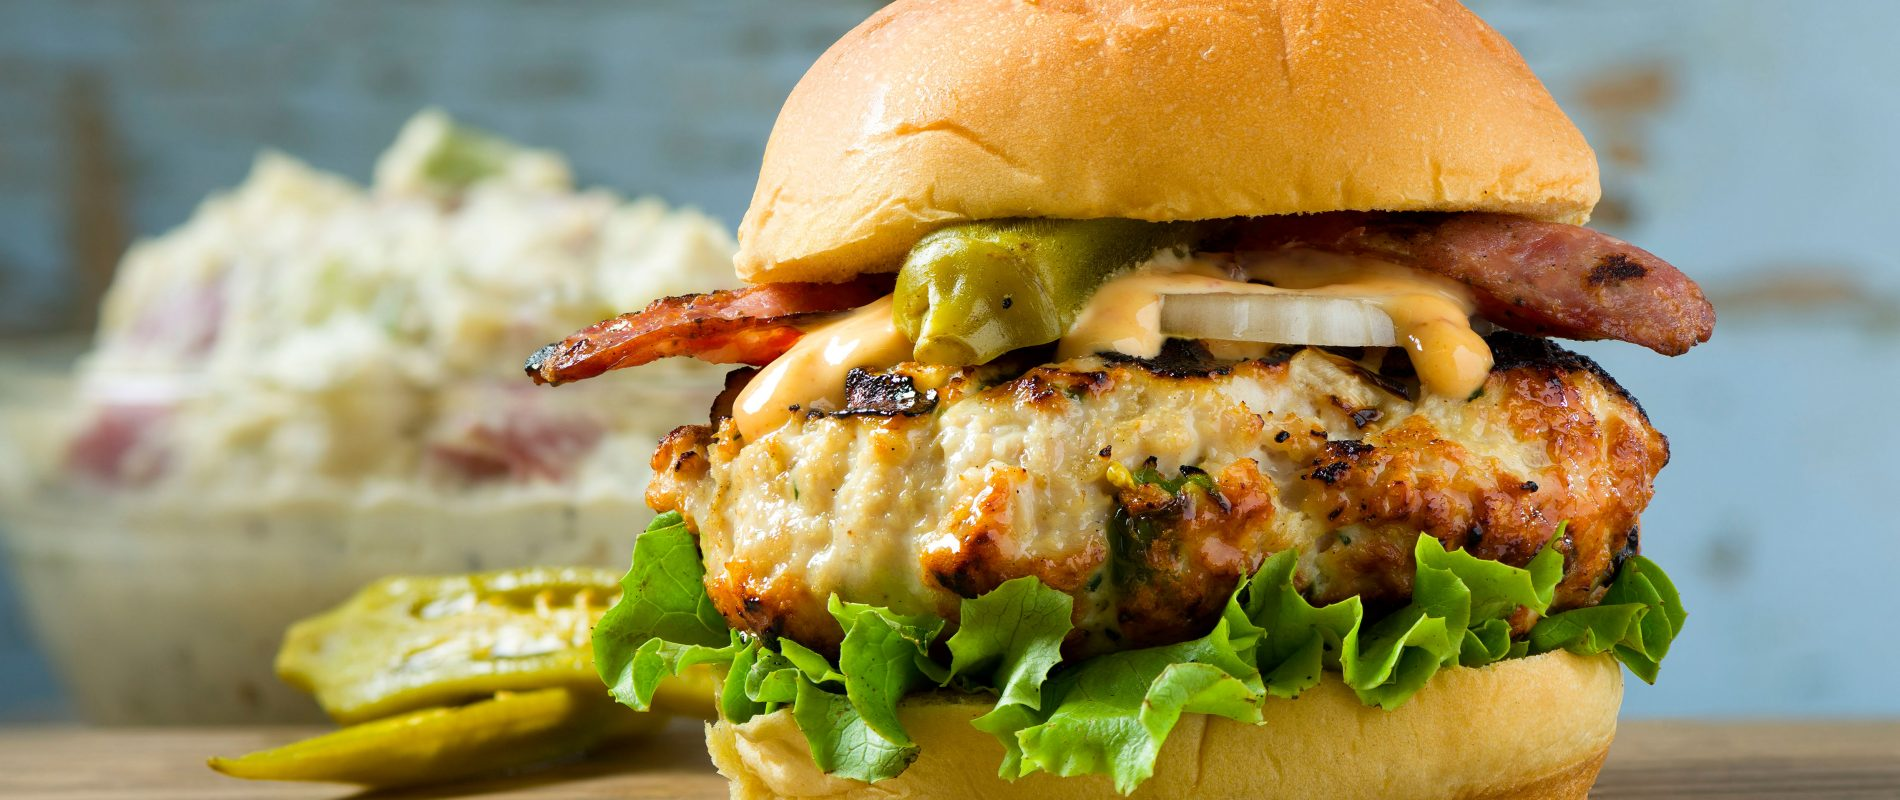 burger issue archives u2022 rouses supermarkets